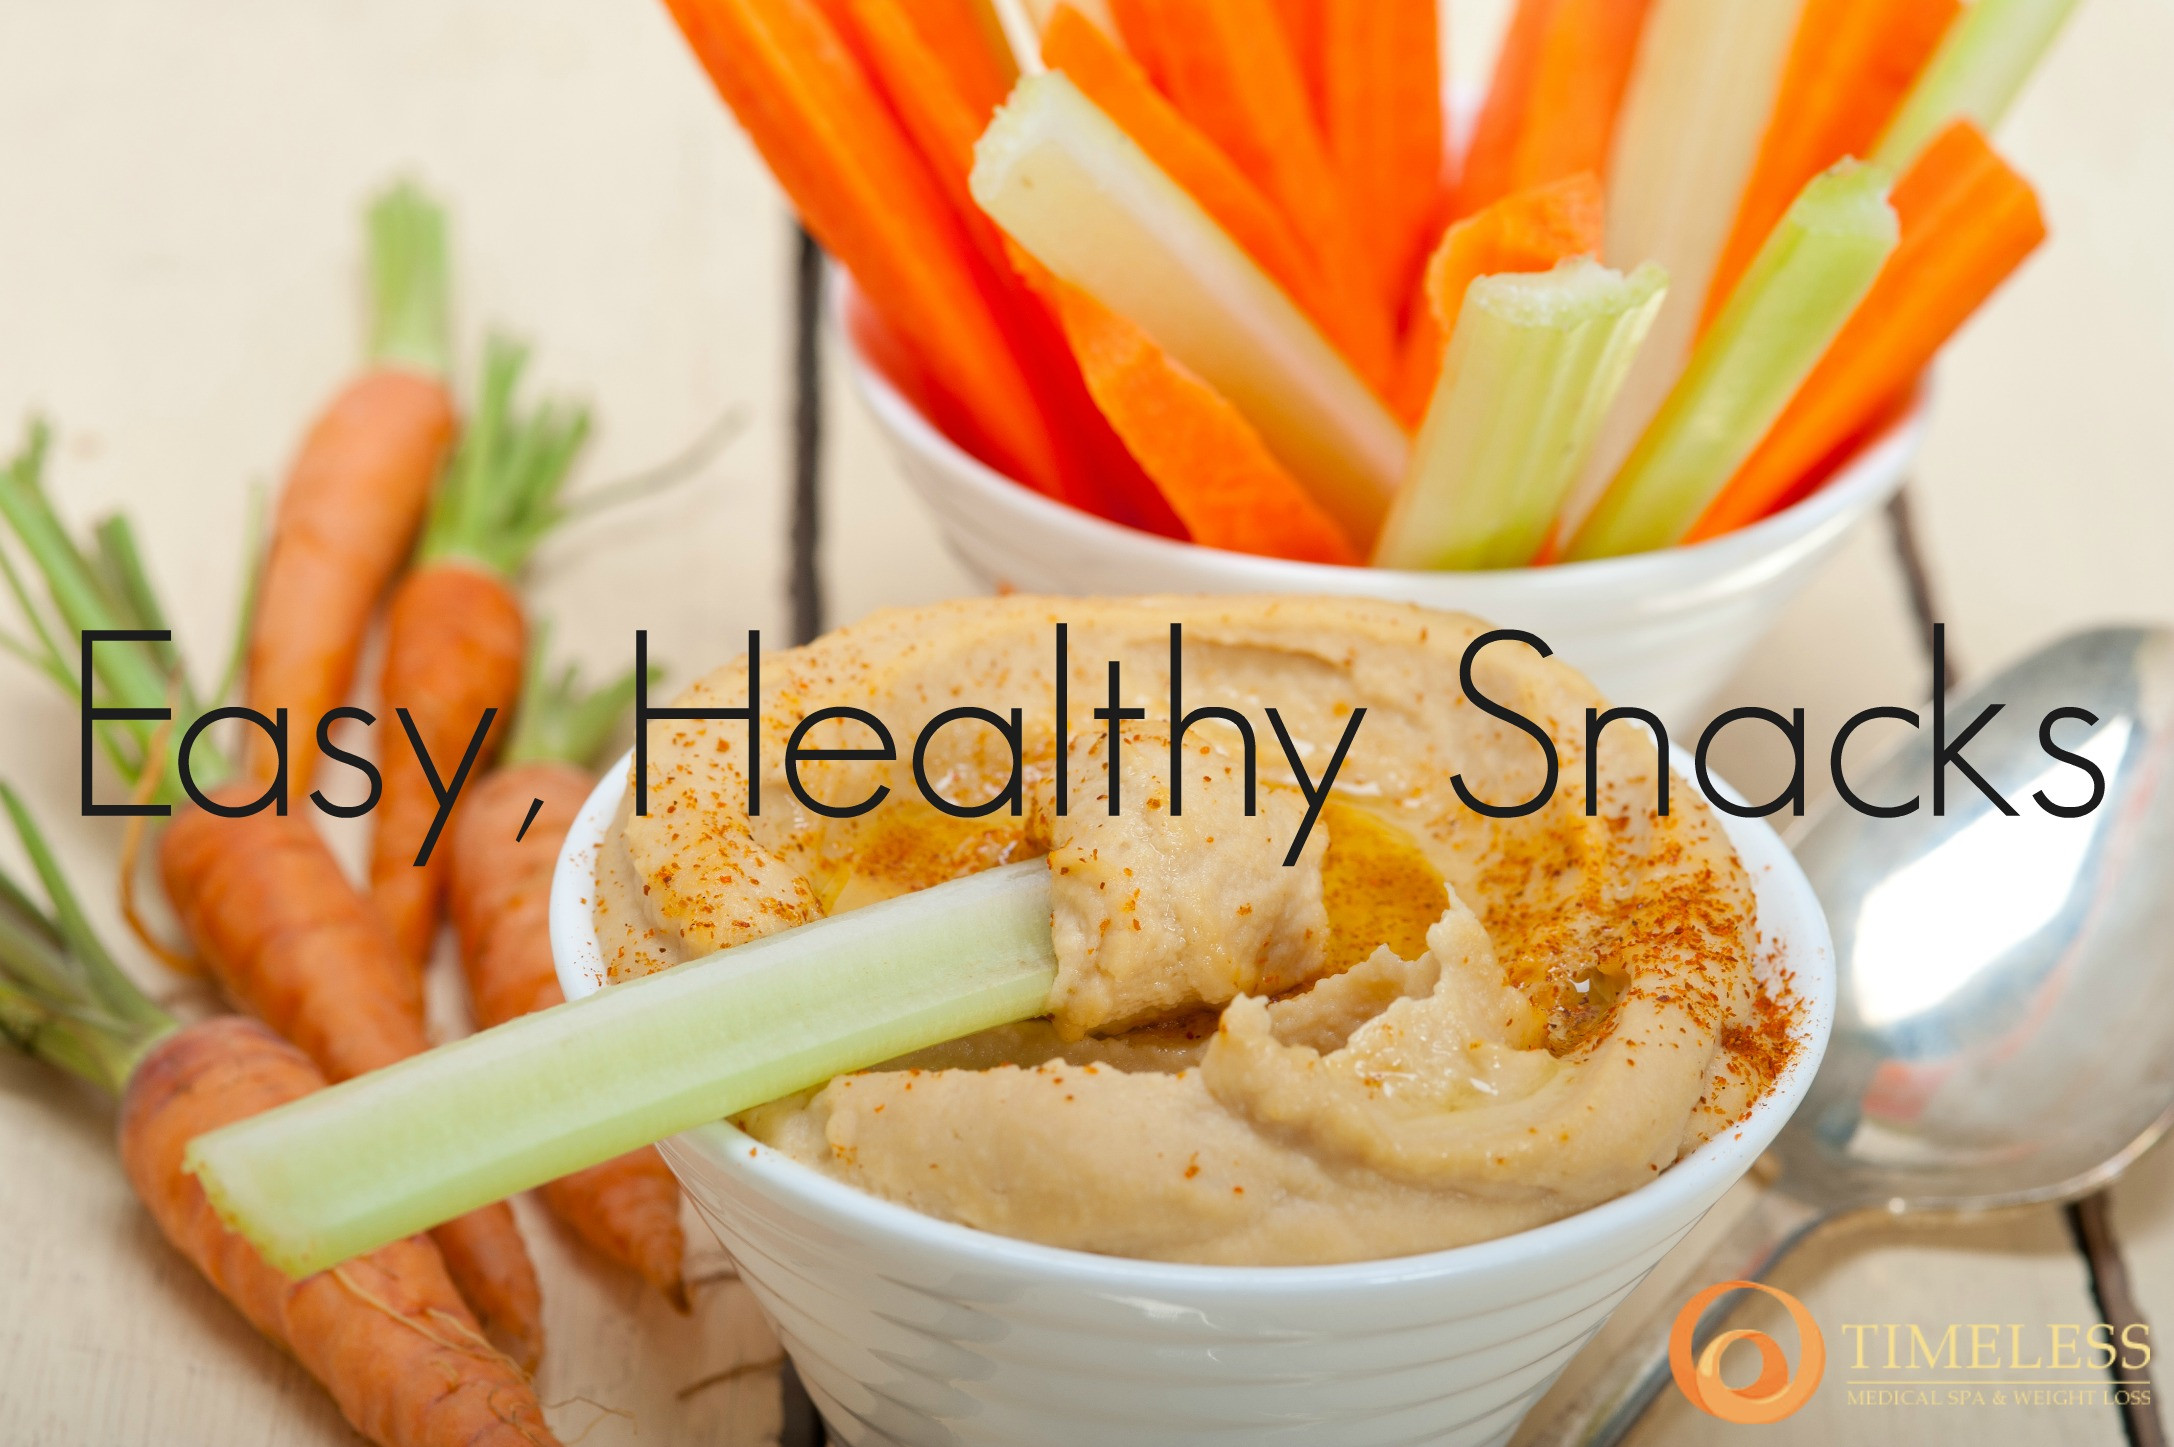 Healthy Easy Snacks  Easy Healthy Snack Ideas TimeLess Weight Loss Blog